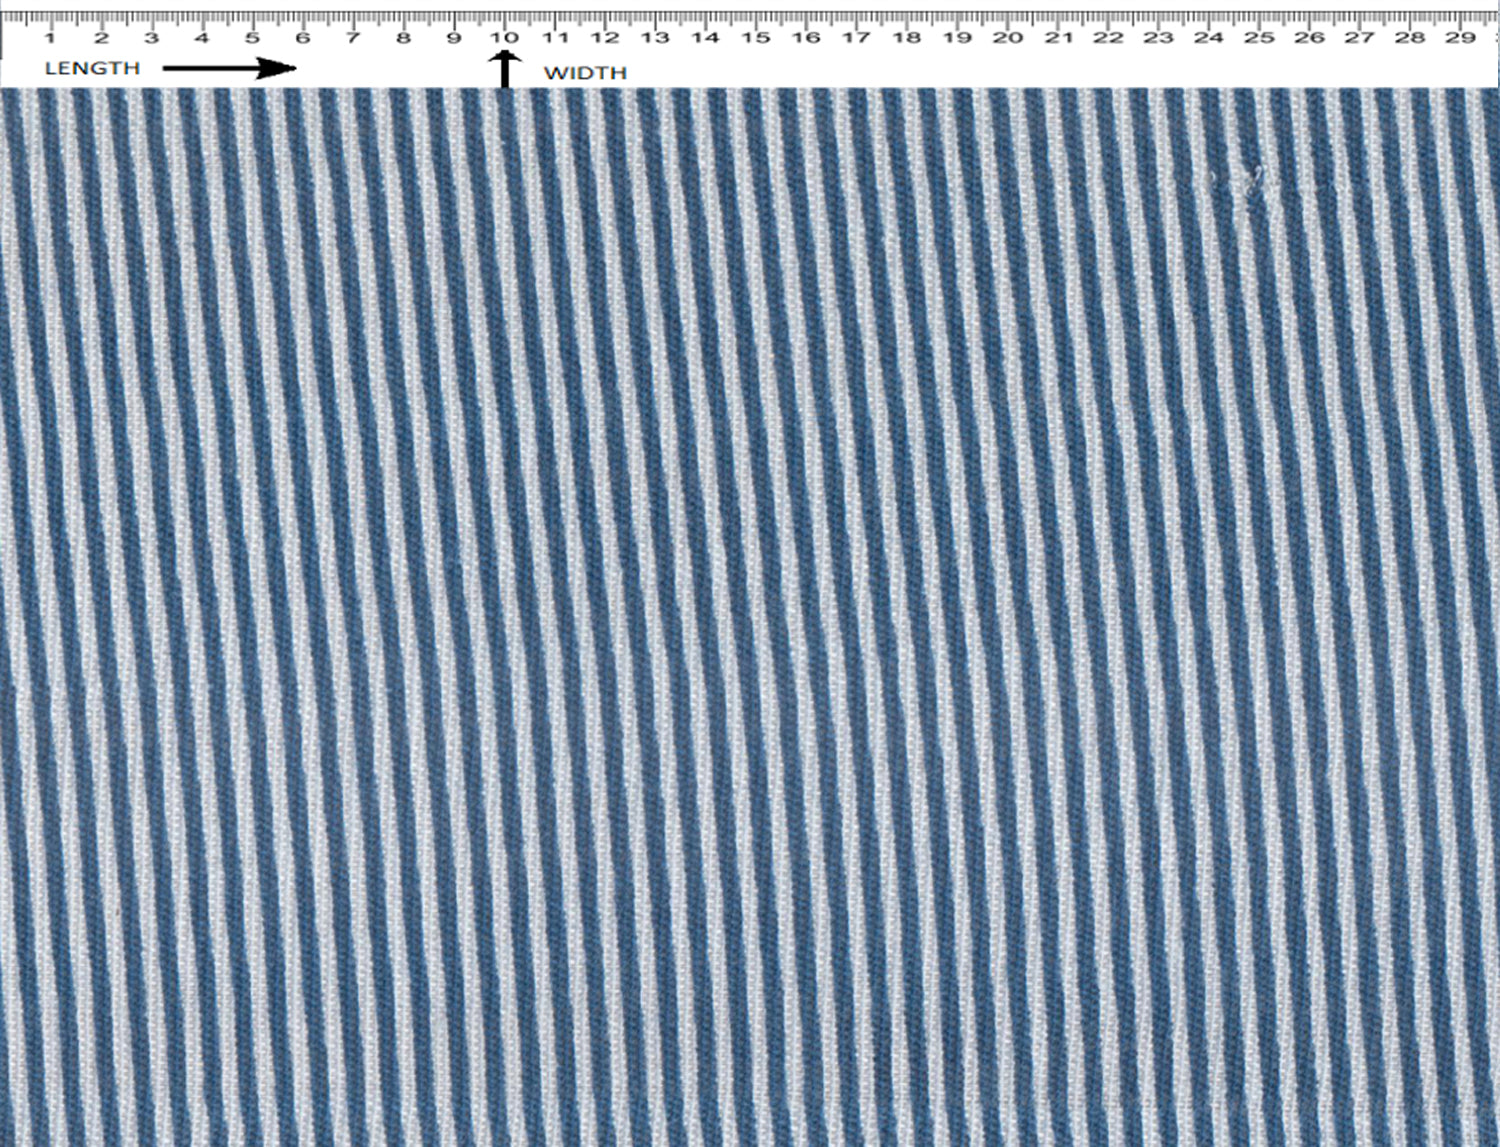 STRIPE PRINT [ WHITE-BLUE] (Khadi)